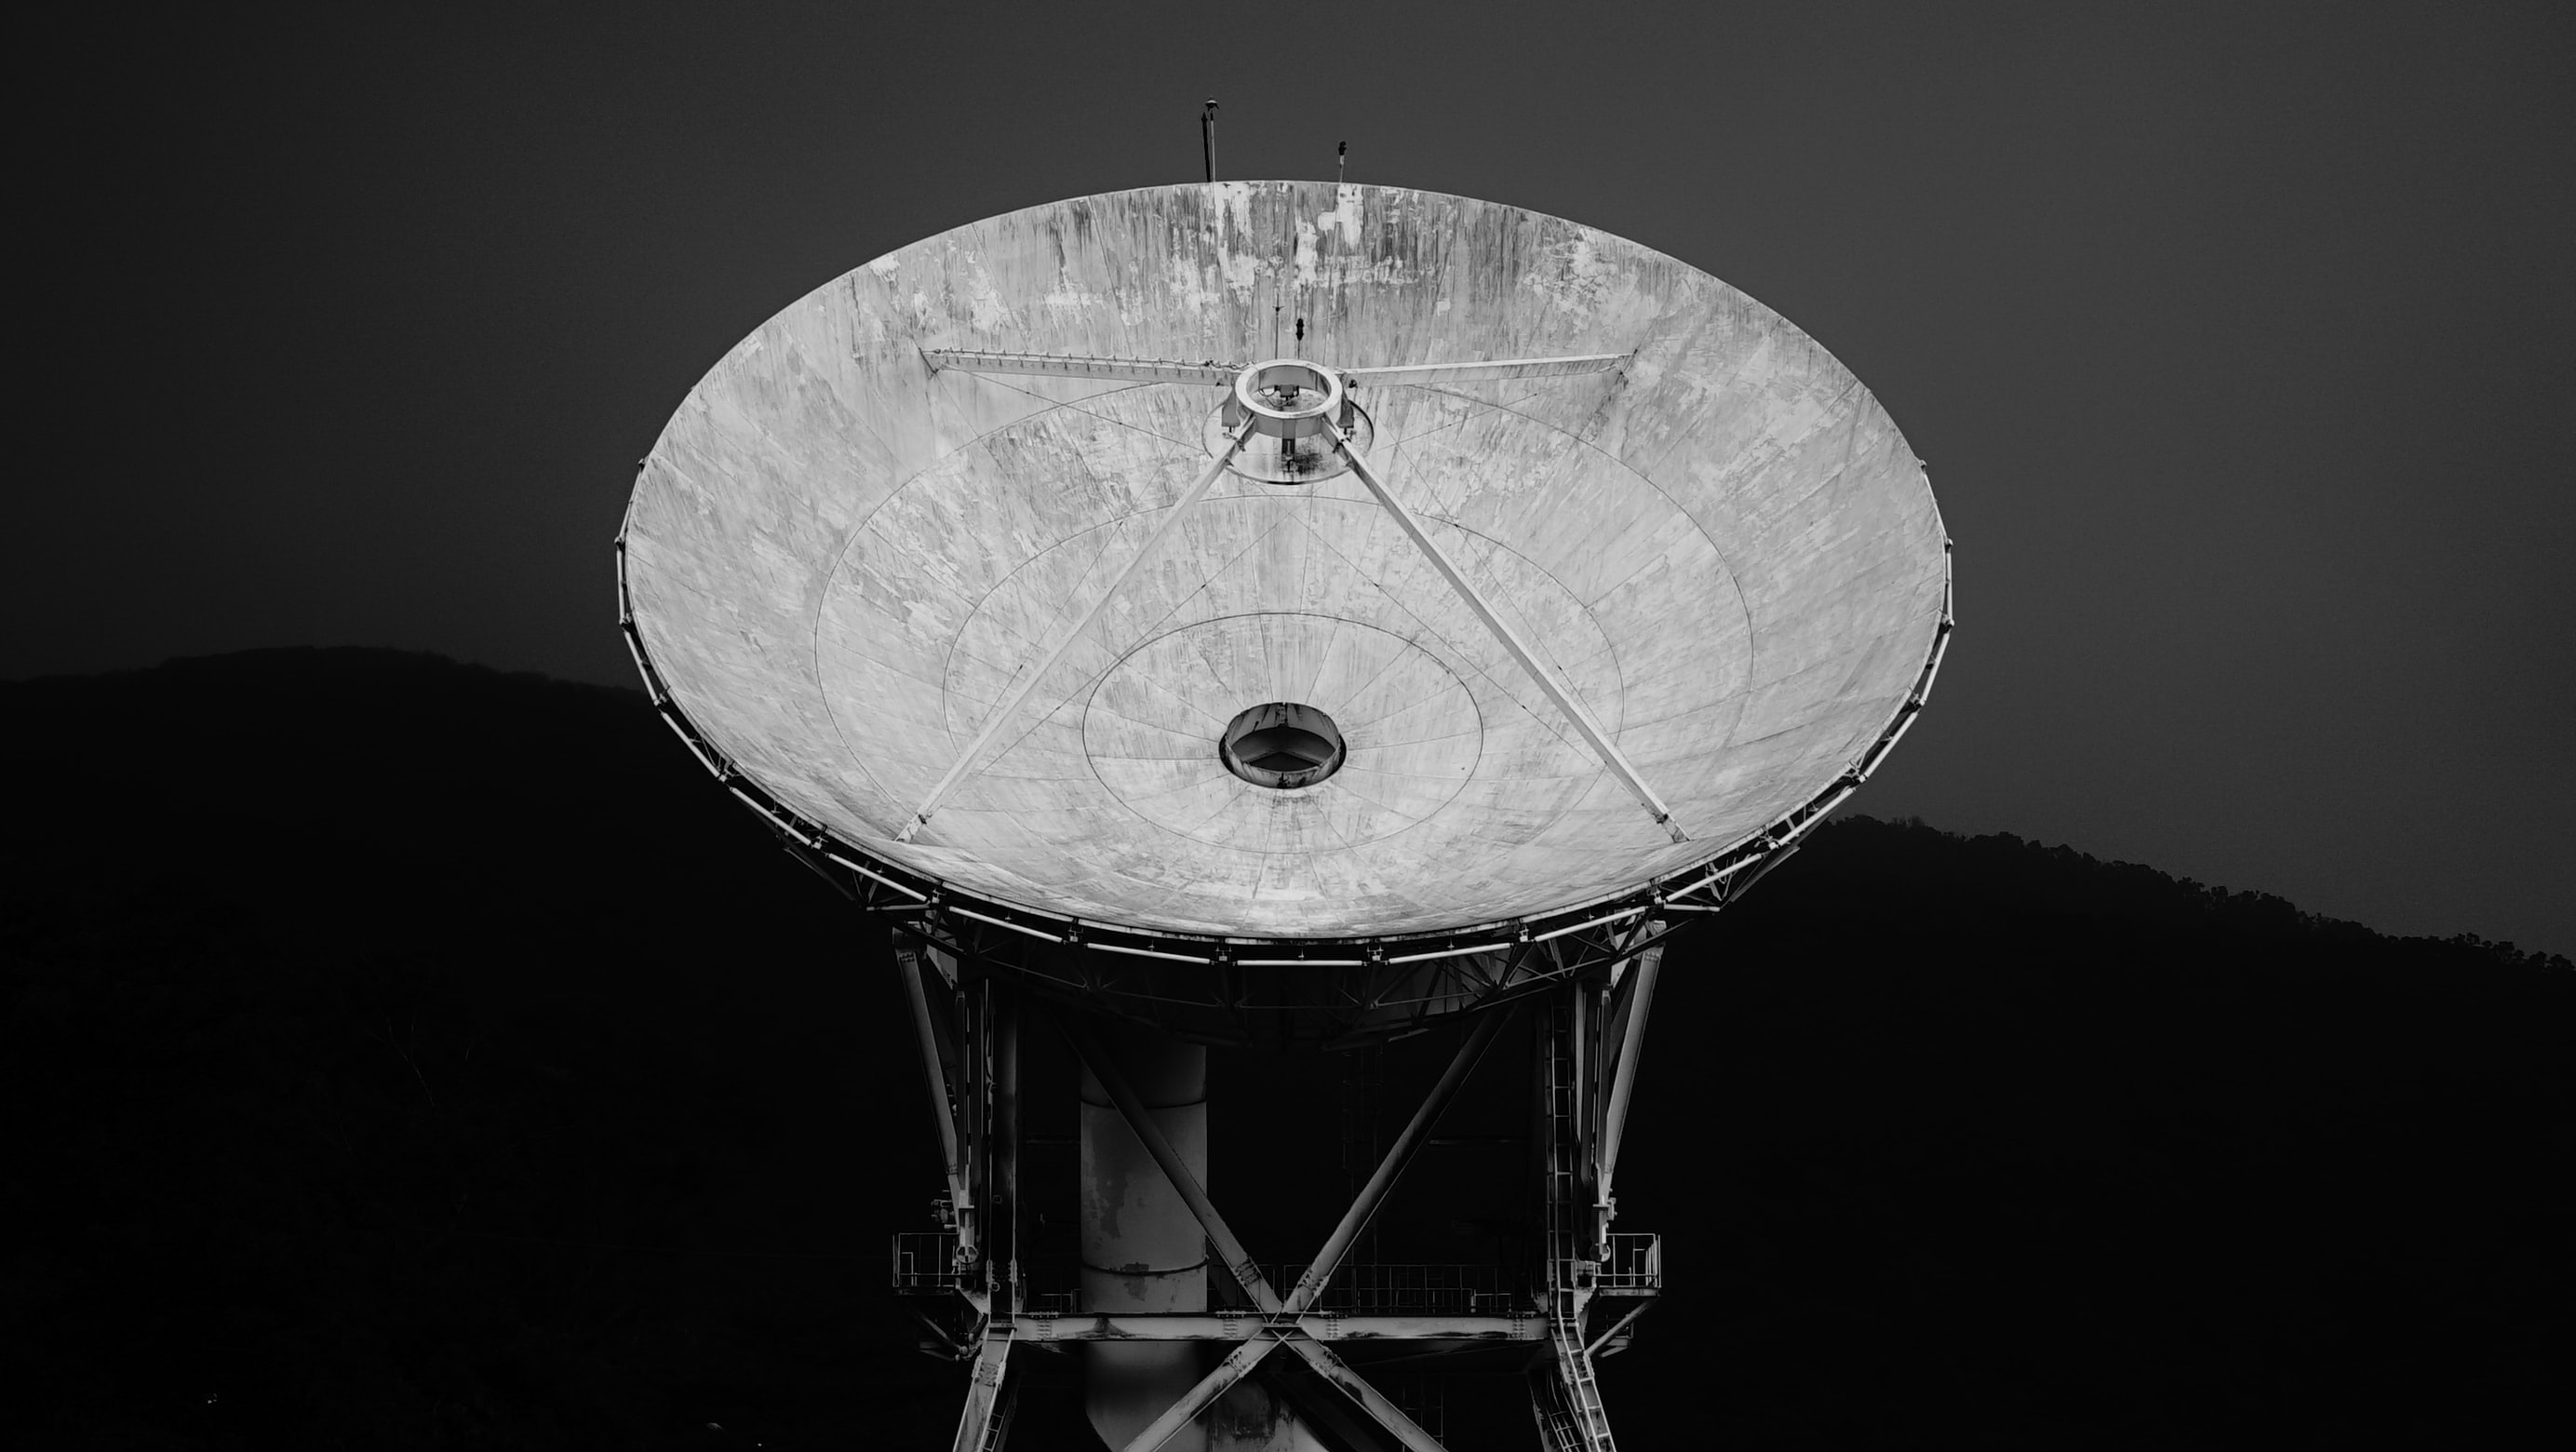 A black-and-white shot of a dish radio telescope